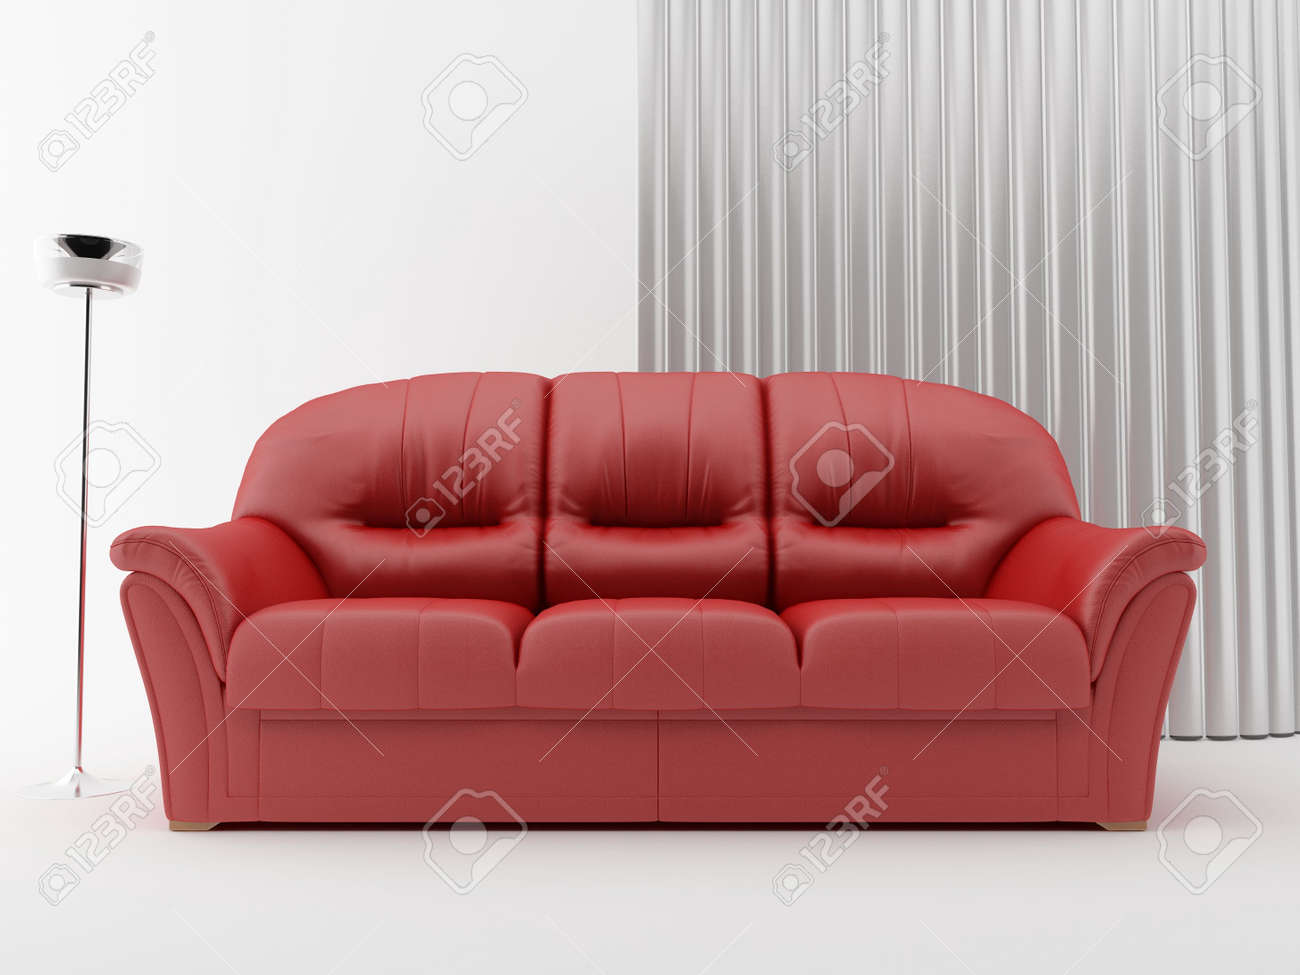 Modern red leather Couch to face a blank wall